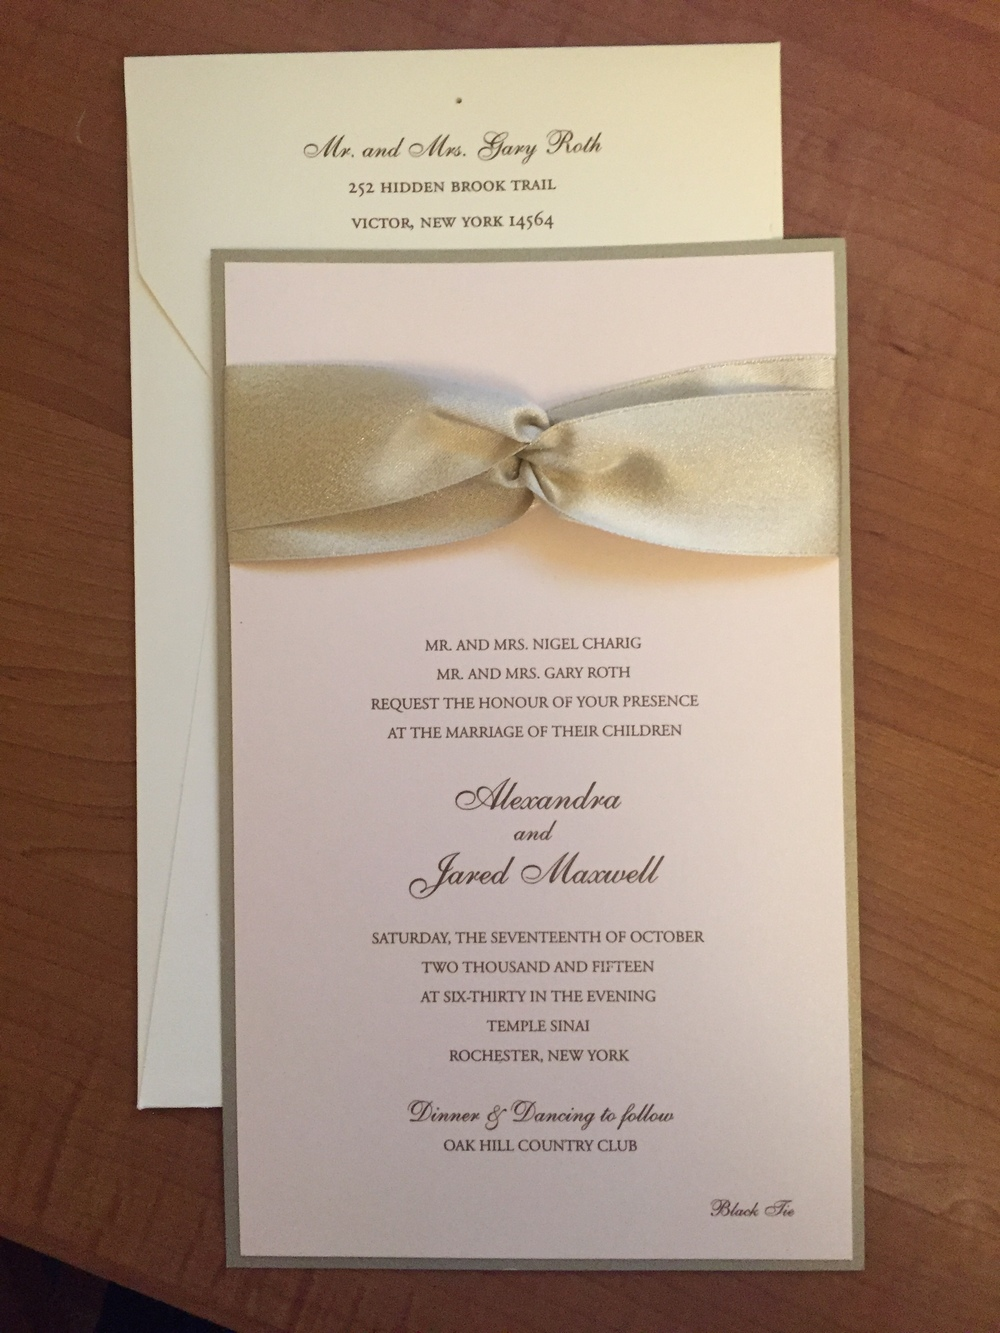 Invitations Etc. Is A Home Based Enterprise Bringing The Latest Styles And  Trends In Invitations And Personalized Papers To Rochester, New York.